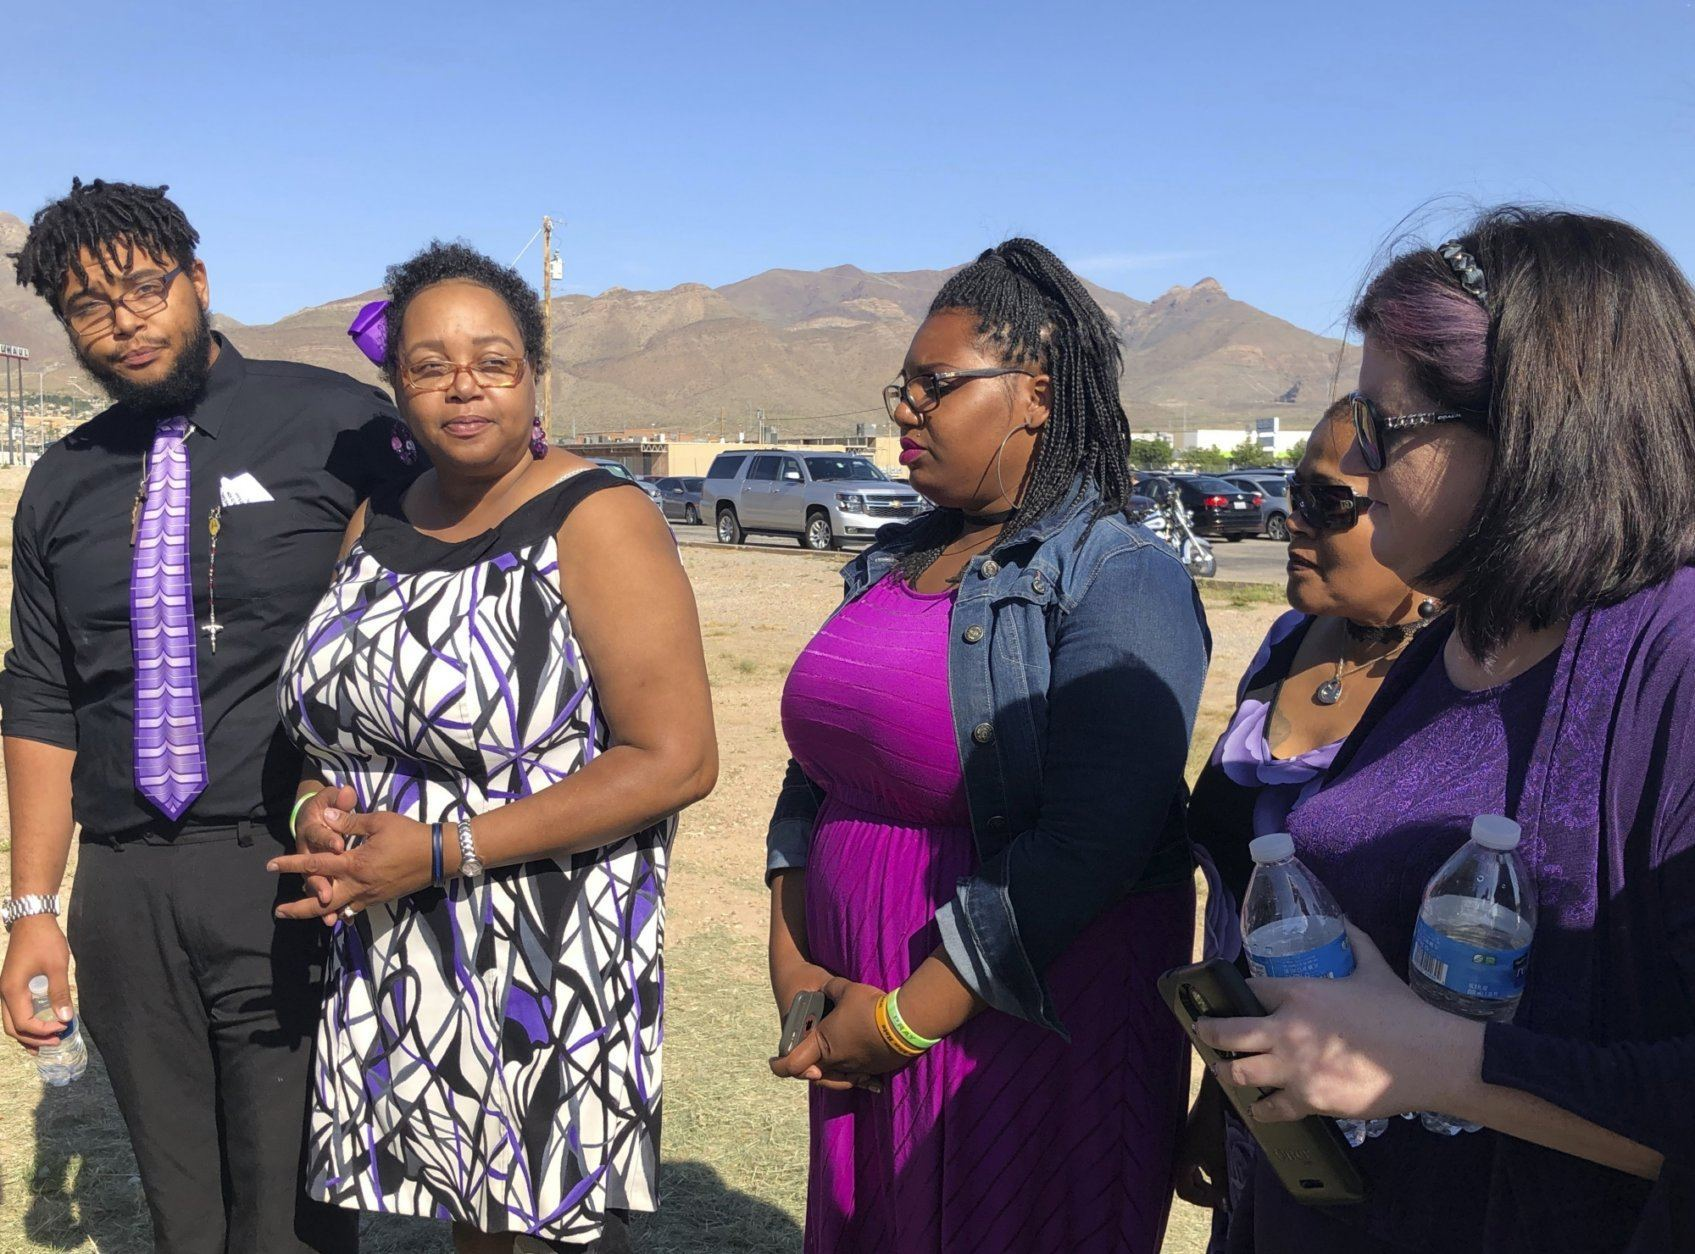 Tyler Reckard, left, 19, speaks to reporters on Saturday, Aug. 17, 2019, in El Paso, Texas, along side other family members about his grandmother, Margie Reckard, 63, before her funeral. Thousands of strangers from El Paso and around the country came to pay their respects this weekend to Reckard, who was killed by a gunman who opened fire at a Walmart in El Paso earlier this month.   (AP Photo/Russell Contreras)